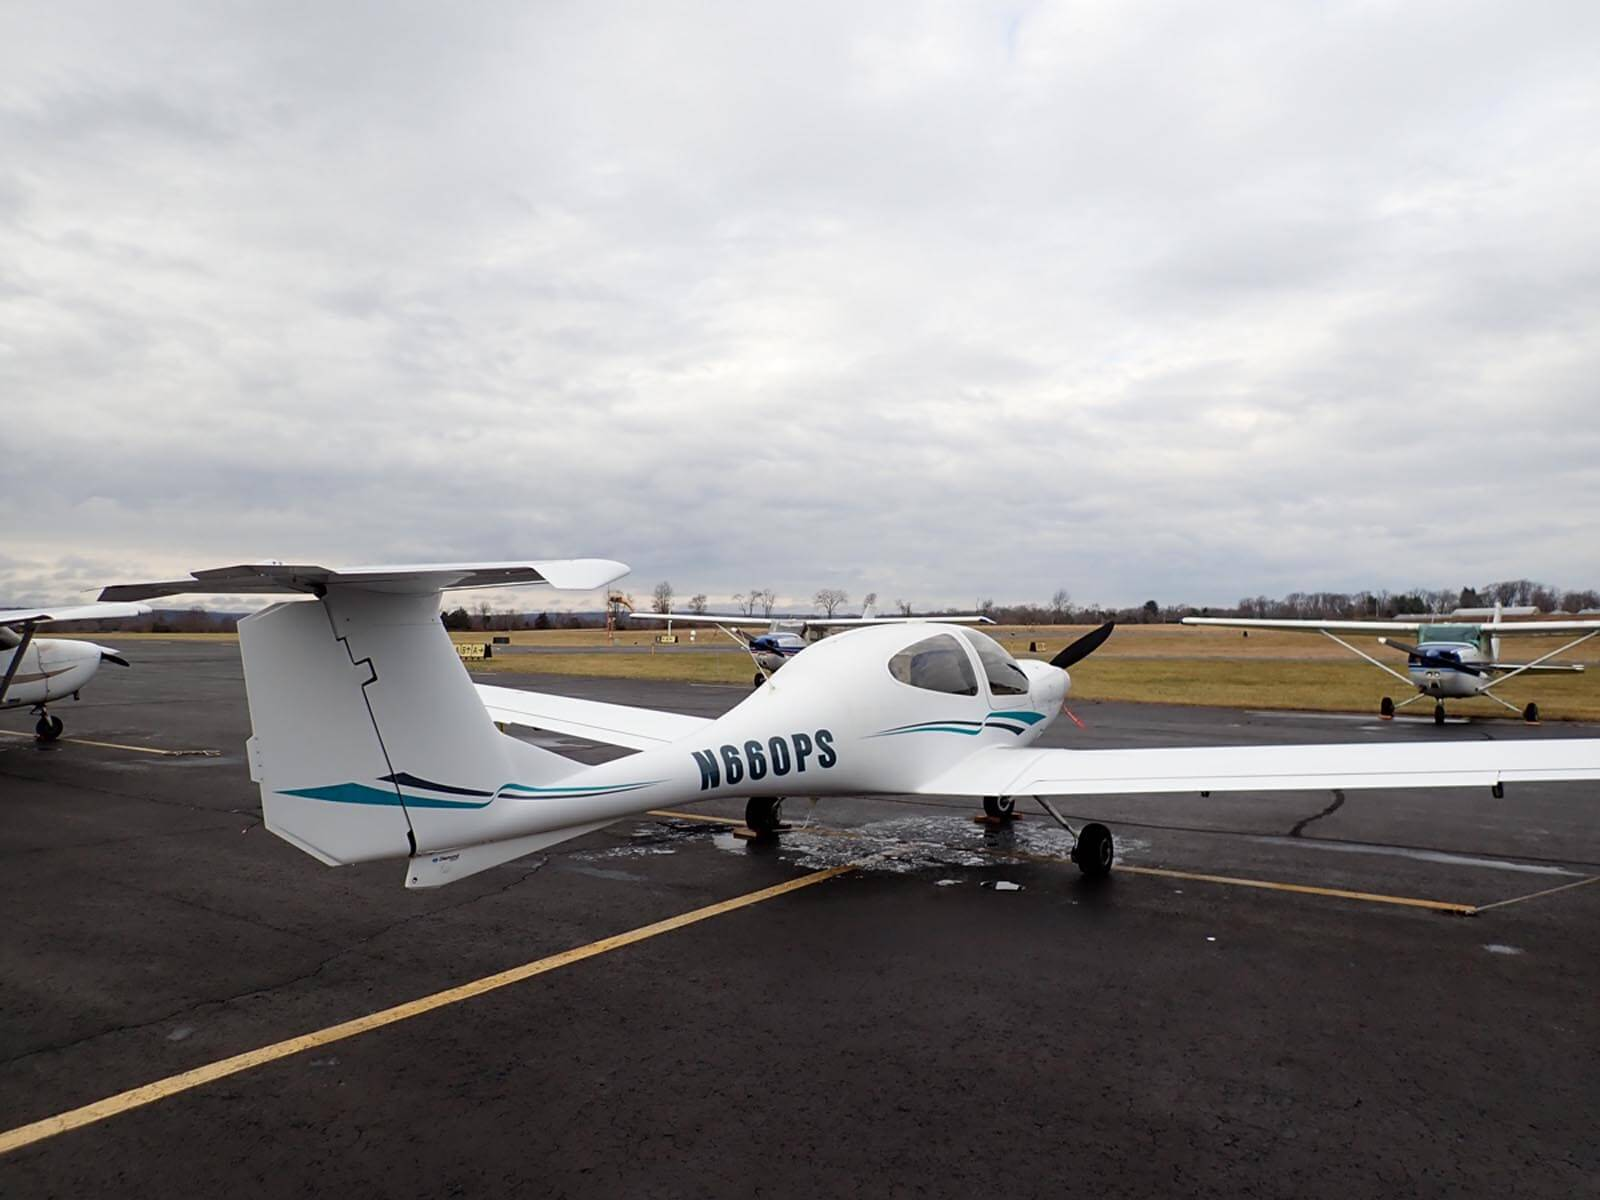 2005 Diamond DA40 - FOR SALE at Princeton Airport - Contact Ken Nierenberg at 609-731-4628